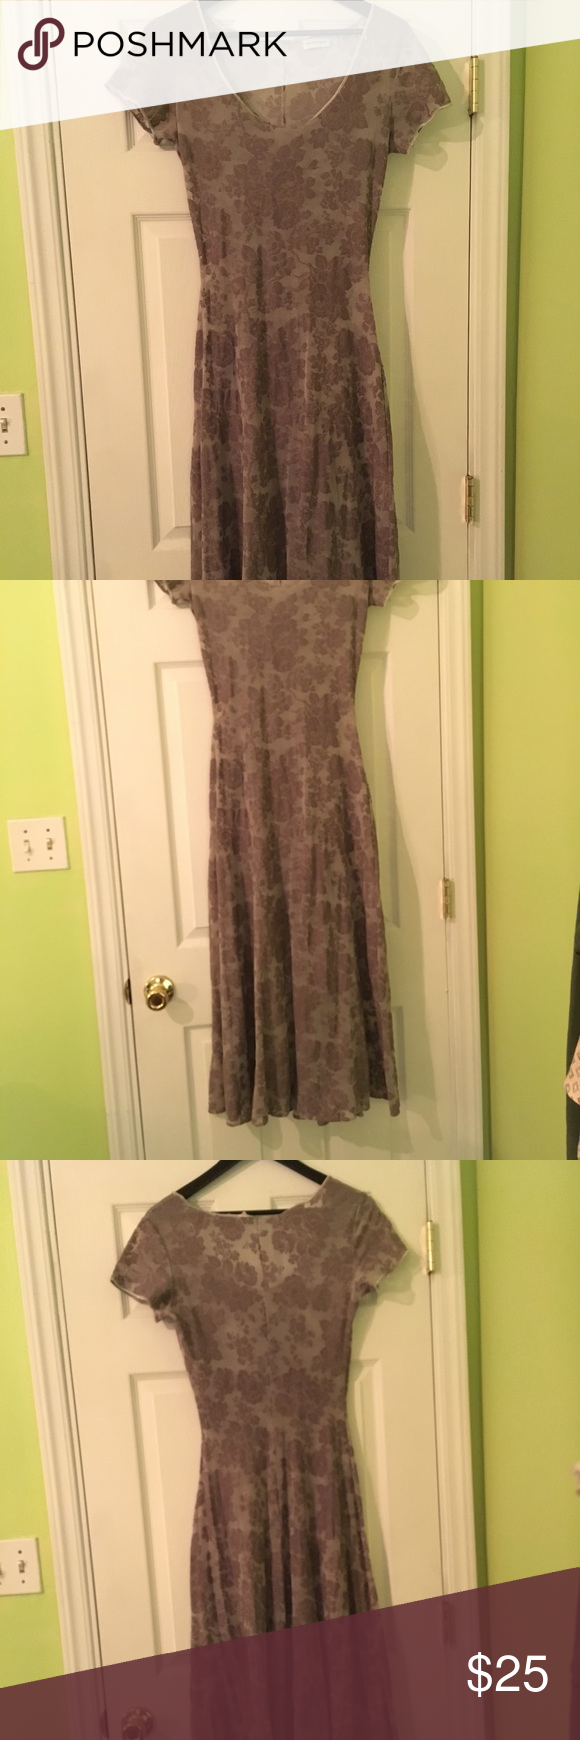 Saks Fifth Avenue Grey Floral Lace Maxi Dress Grey Floral Lace